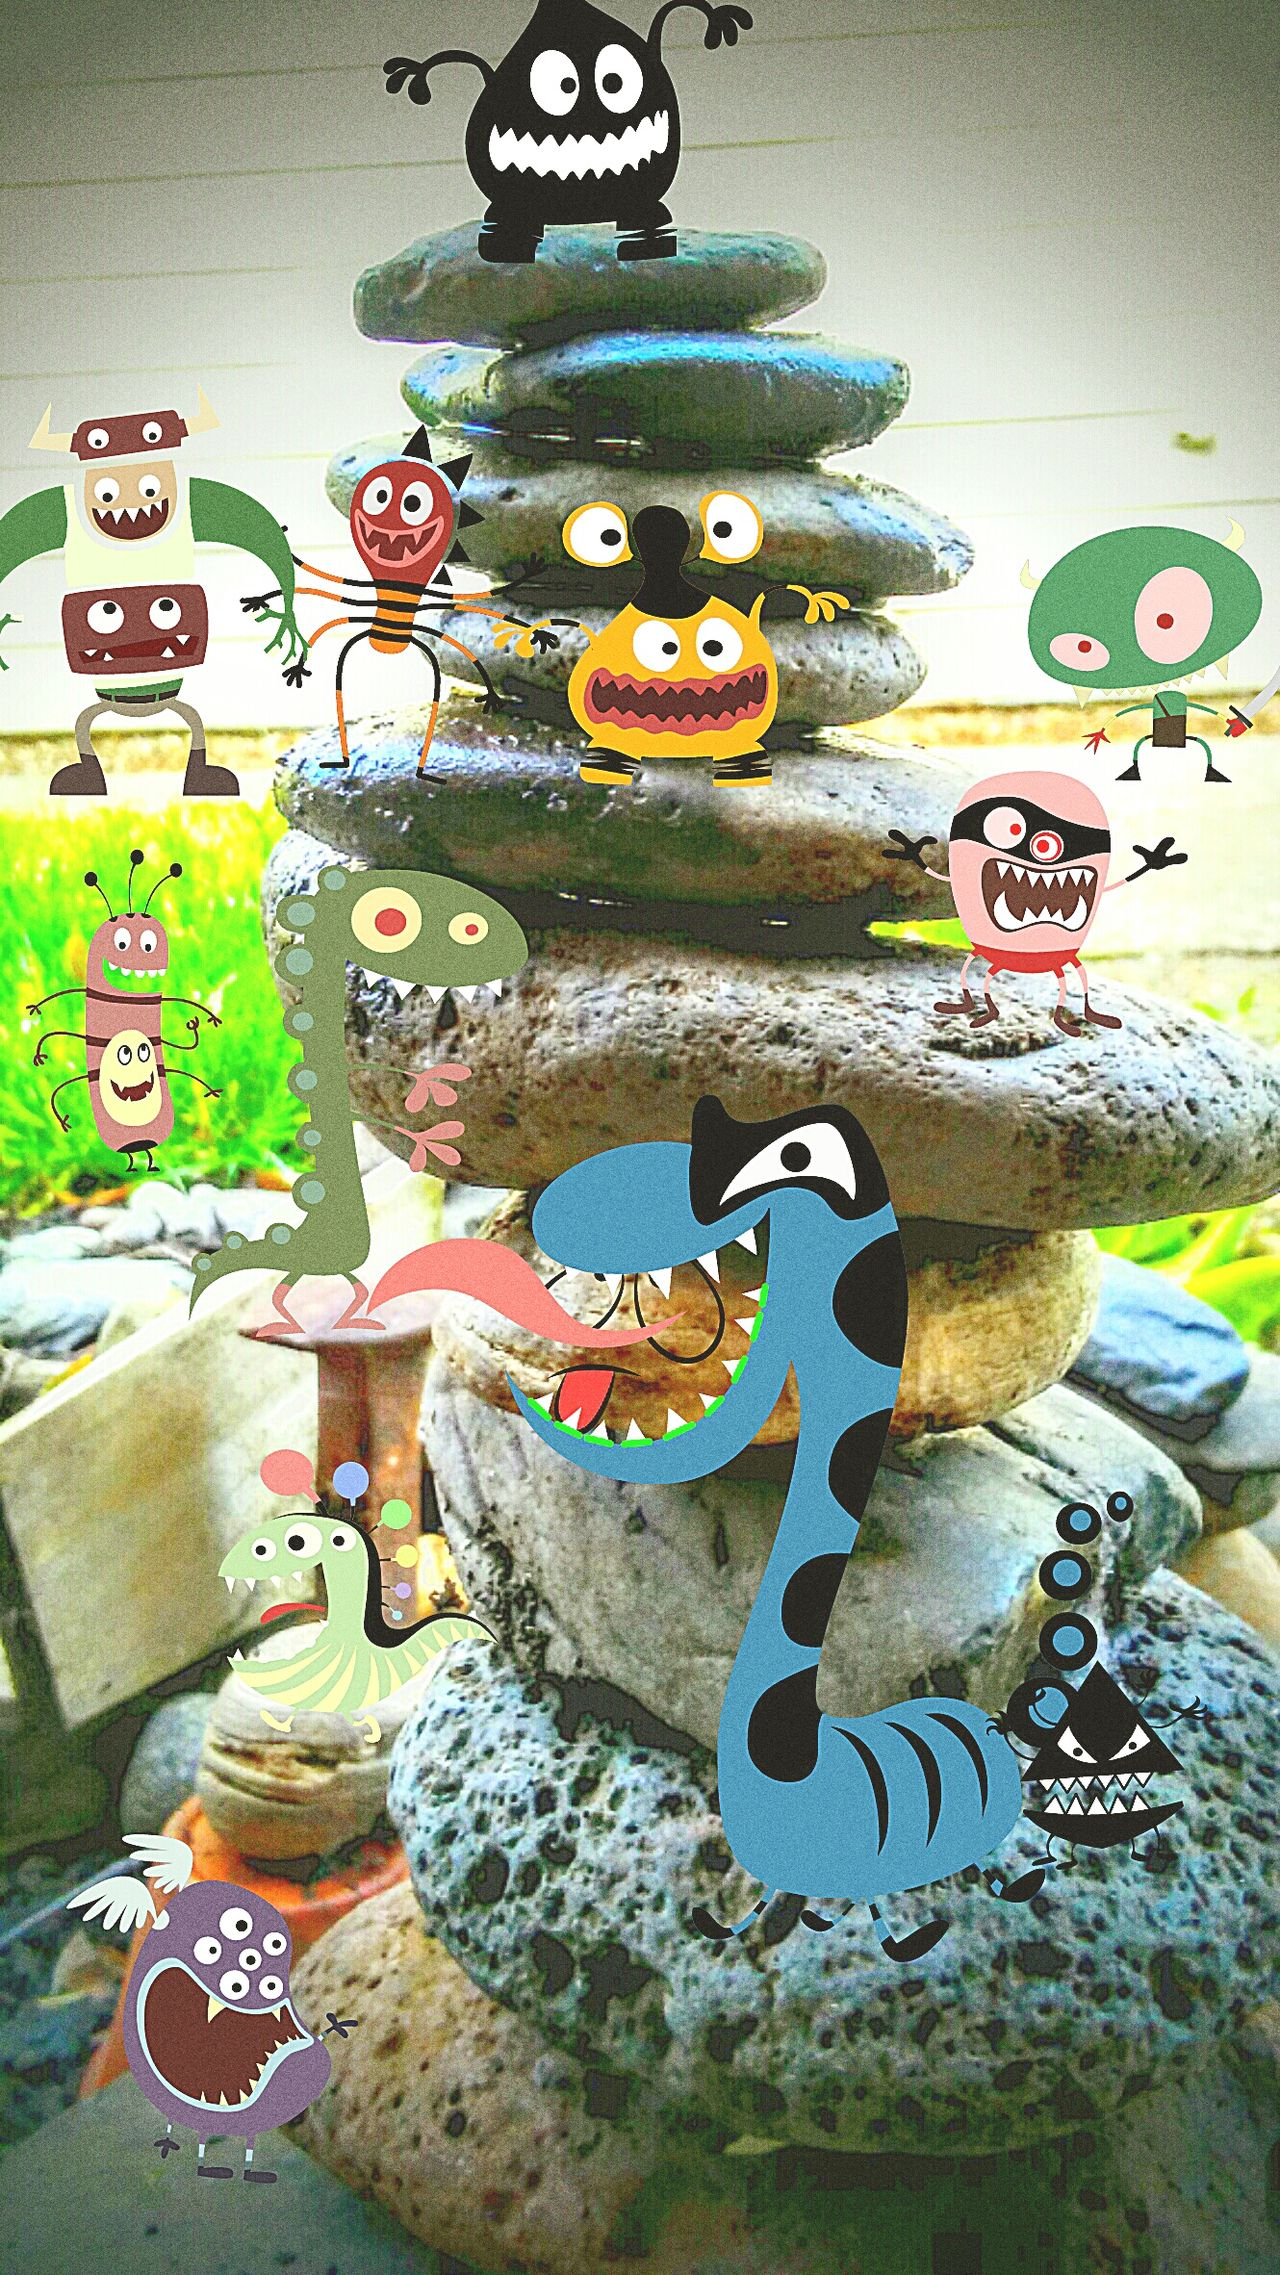 Monsters Rocks Rockstars Going To Get You Art My Pictures Tell Storys My Picture My Edit Funny Faces I Made This! Name Us Little Monsters Having Fun With Photography This Is Fun Creativity Creative Photography Monster Inc. EyeEm EyeEm Best Shots EyeEm Gallery Eyencreative EyeEm Best Edits Creatures Rock Monsters Yikes! Rawr! Like This Or My Monsters Will Get You!